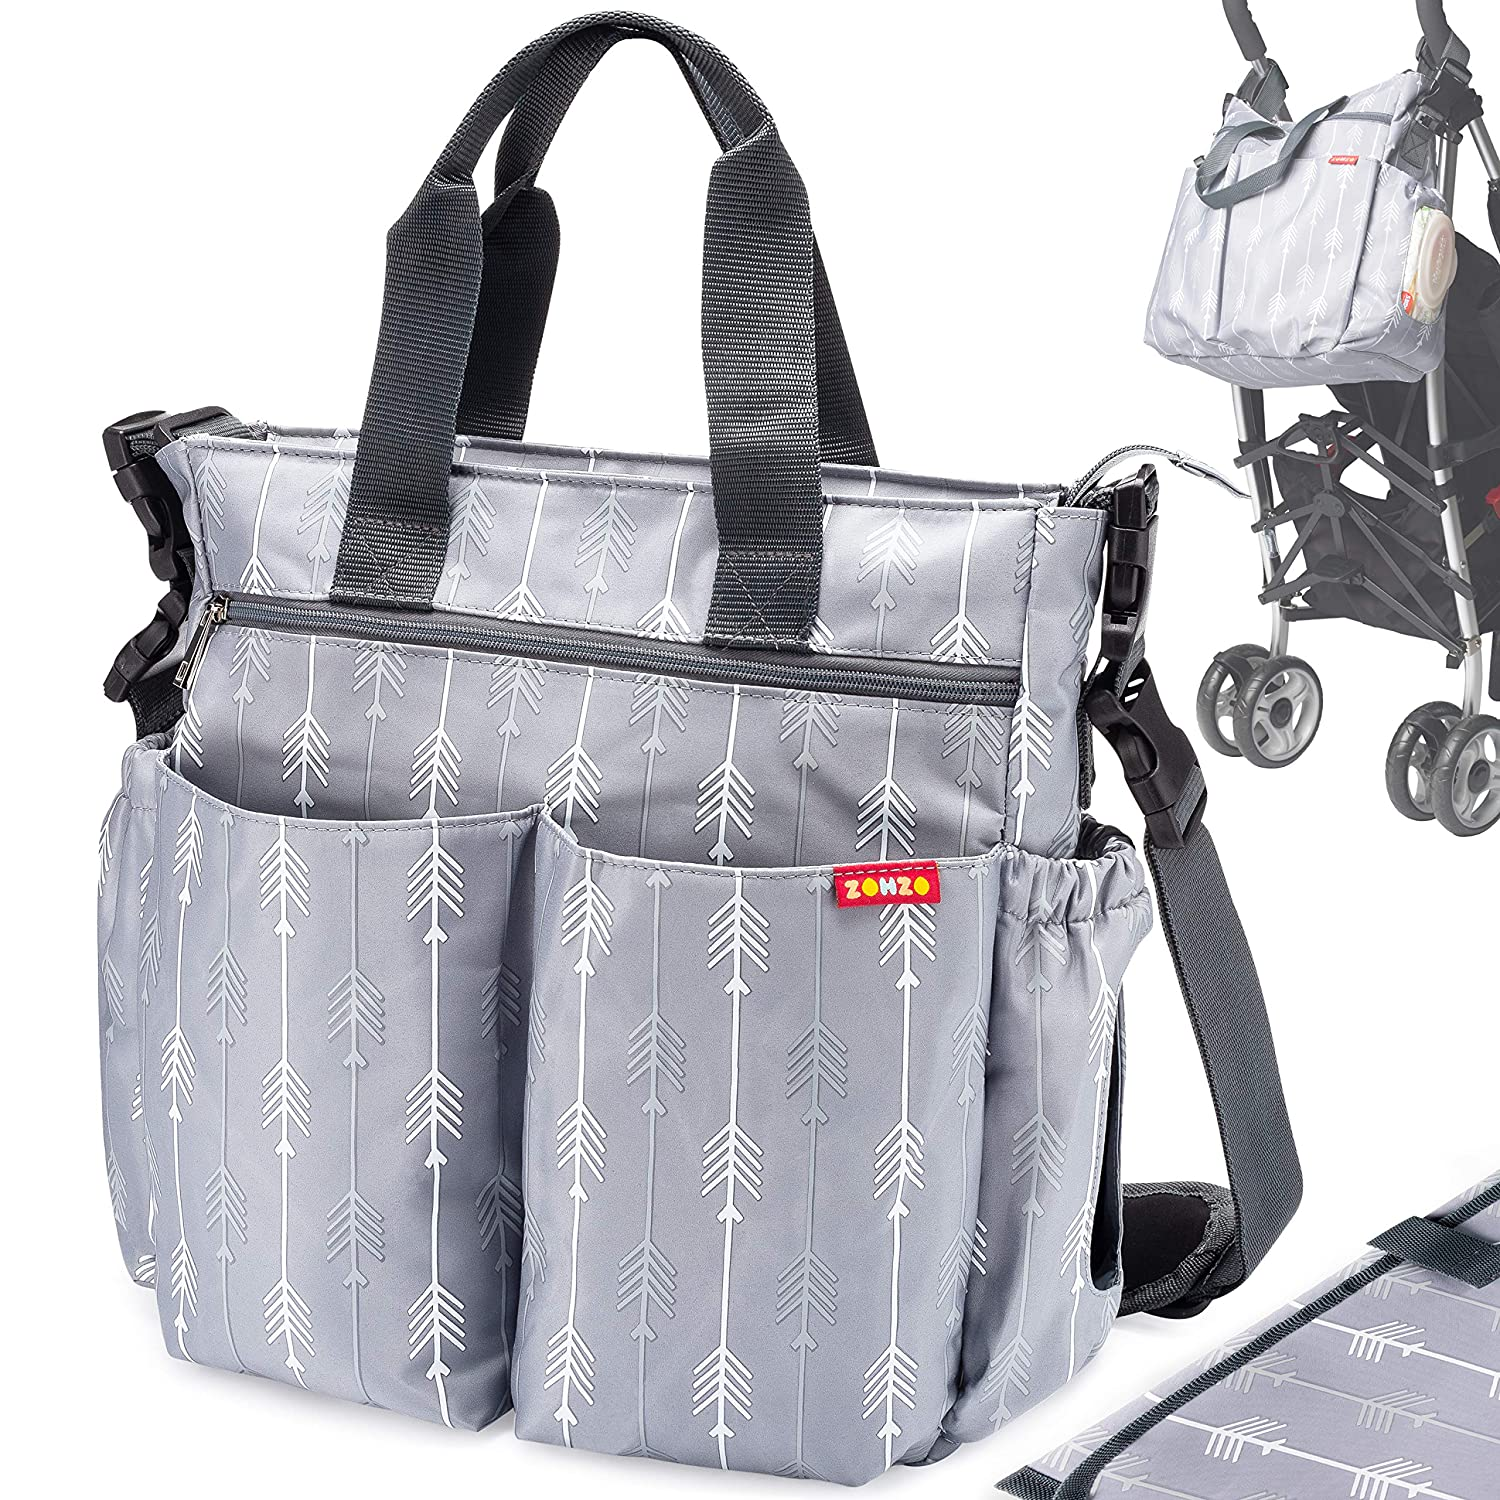 Messenger Bag Tote Baby Nappy Bag Changing Bag with Changing Pad and Shoulder Strap Multifunction Waterproof Lightweight Stylish Travel Handbag Mommy Bag